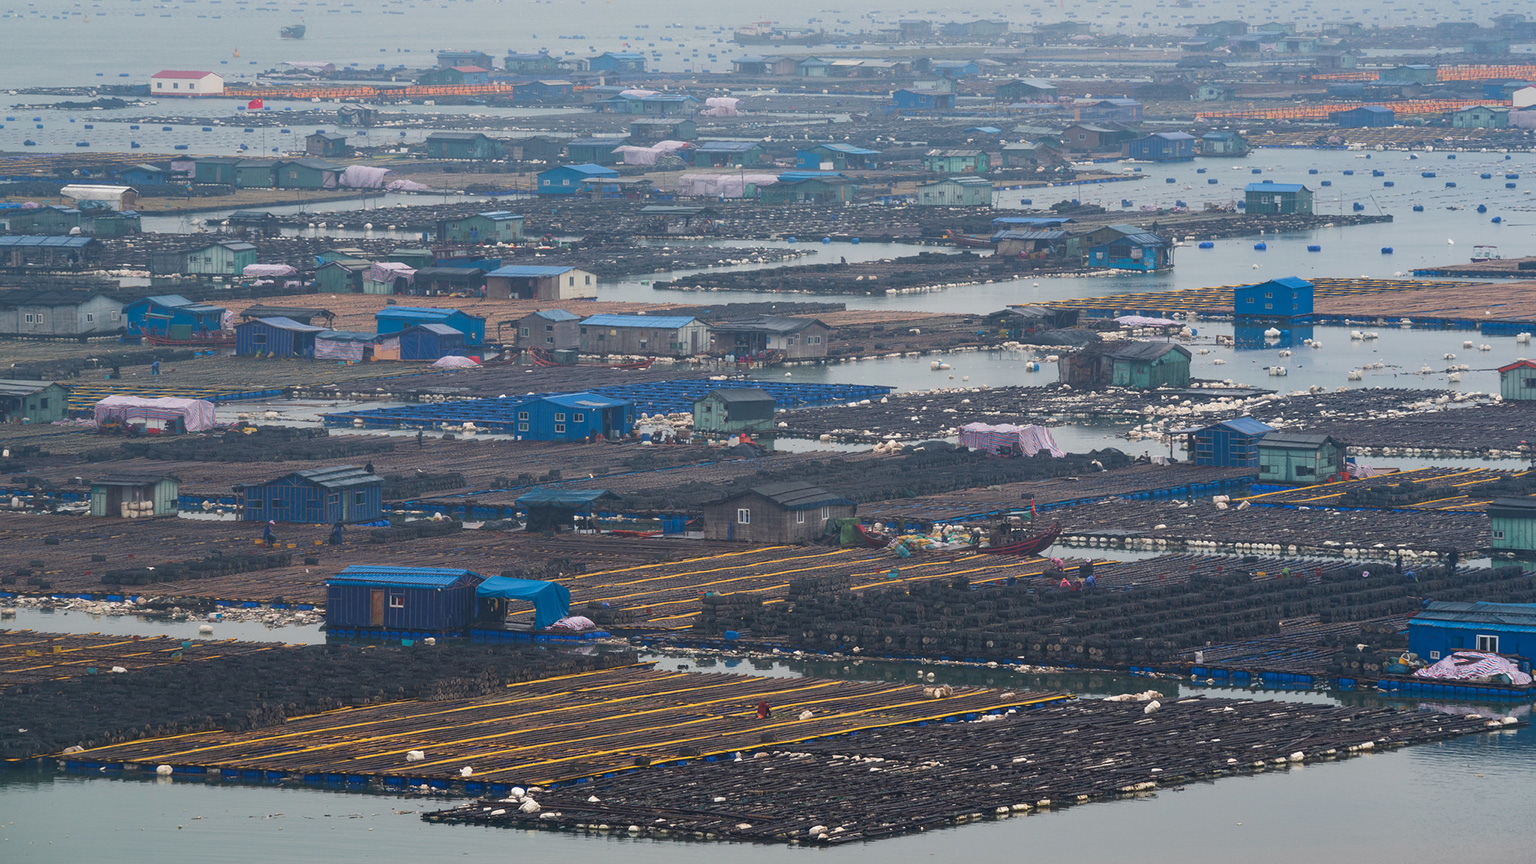 Floating sea farms off the coast of Xiapu, China. Photo credit: Alex Berger